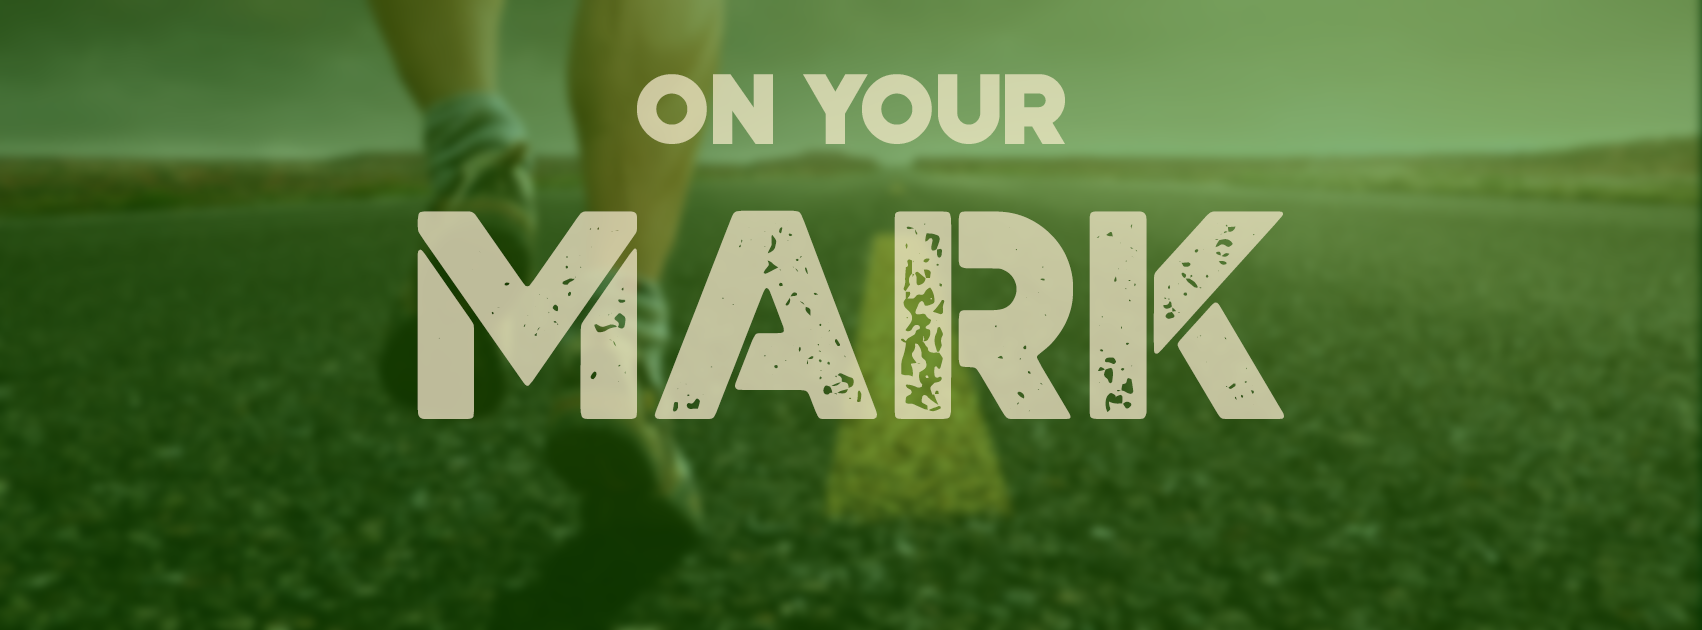 Sermon Series on Mark